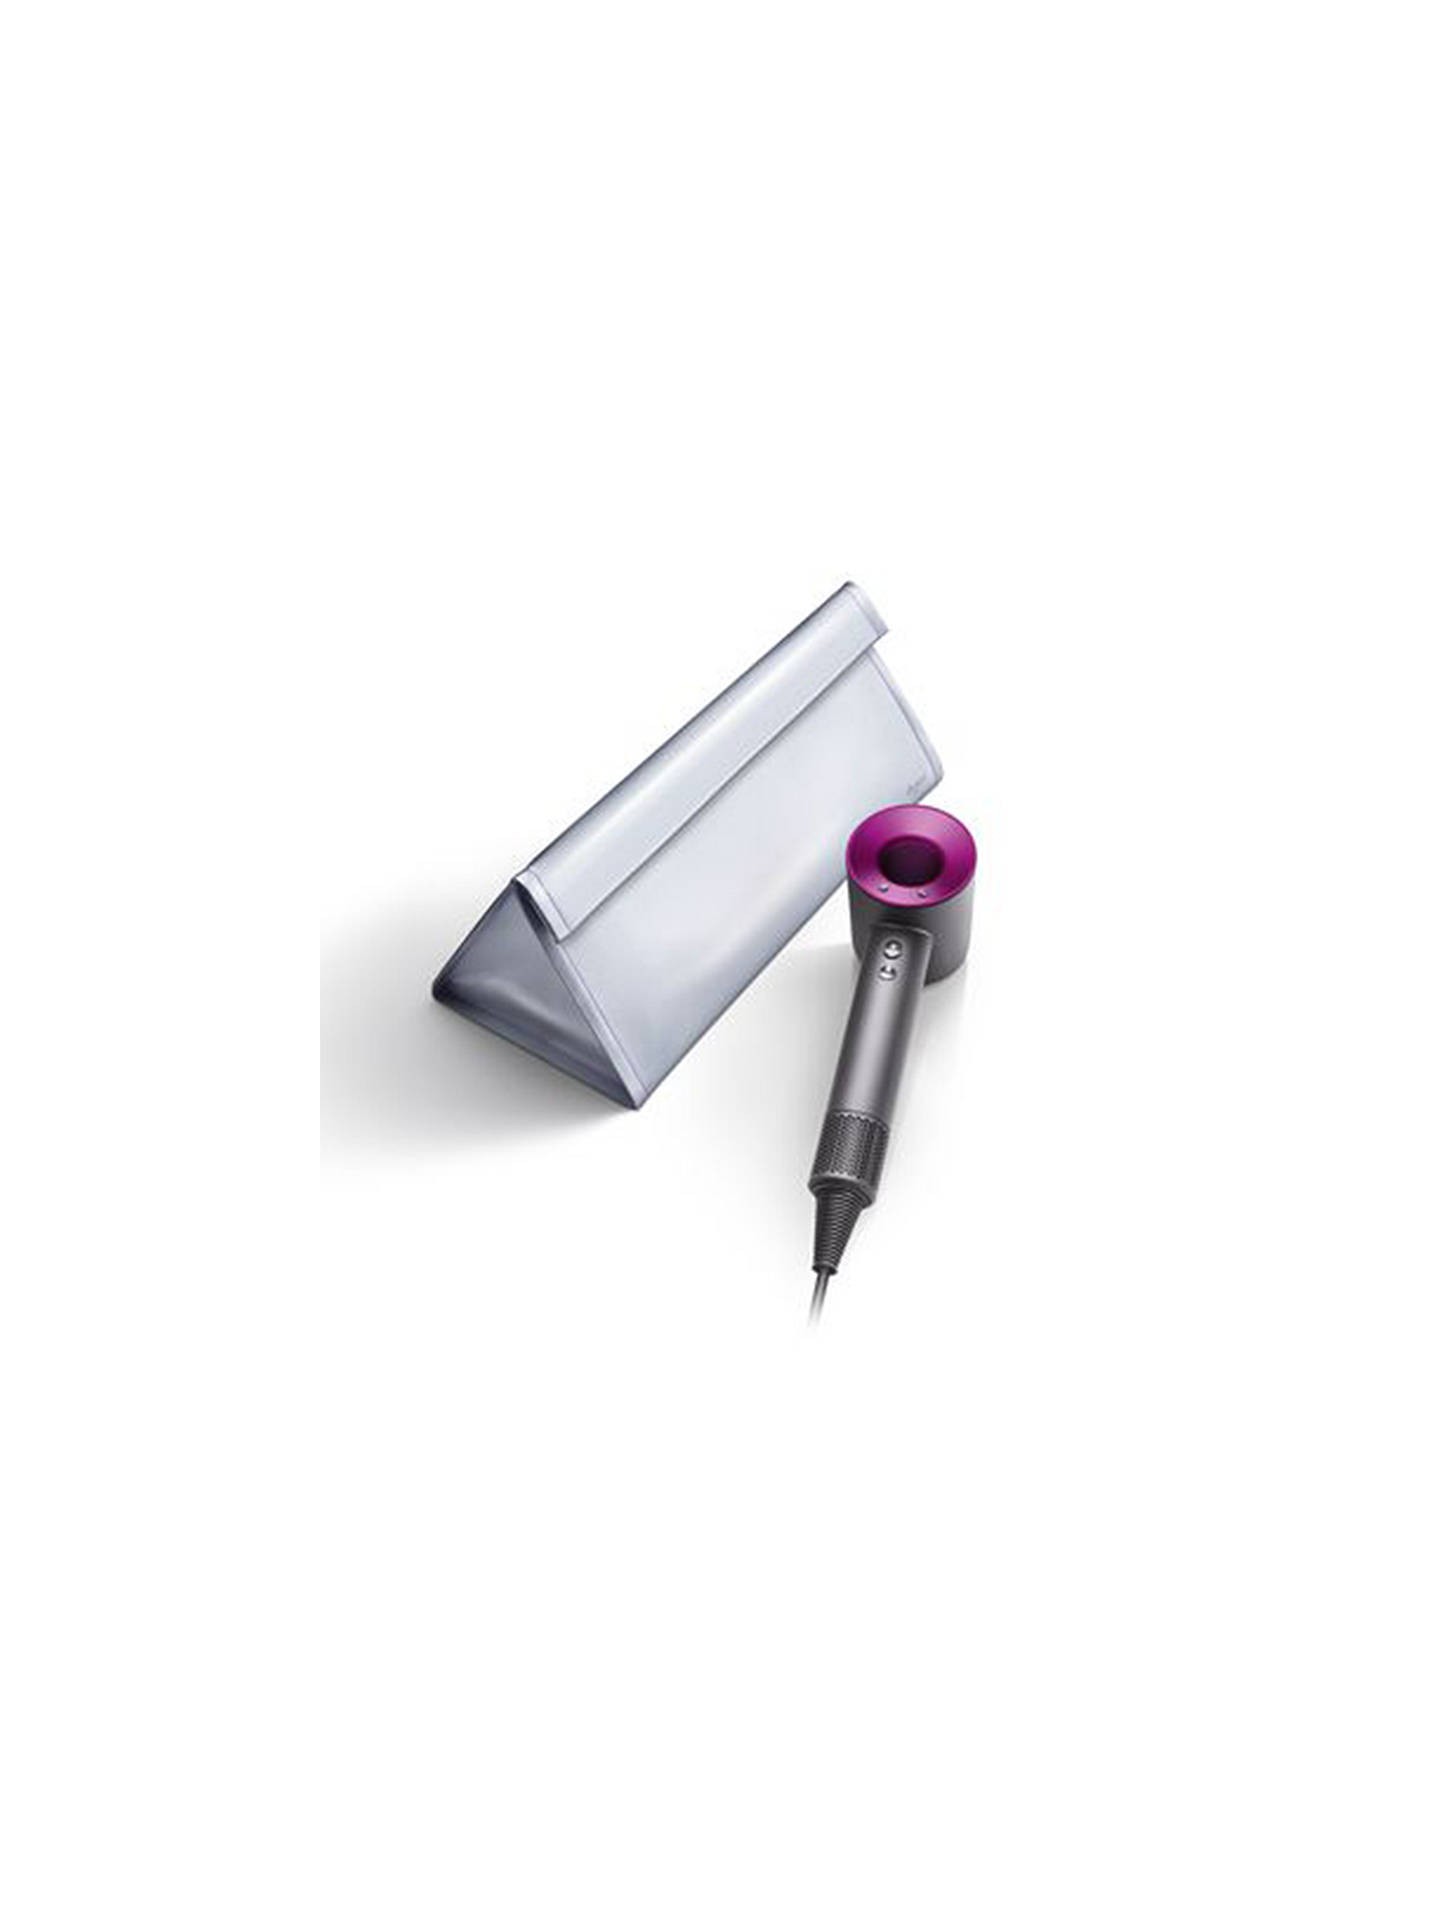 Dyson SupersonicTM Hair Dryer With Travel Bag At John Lewis